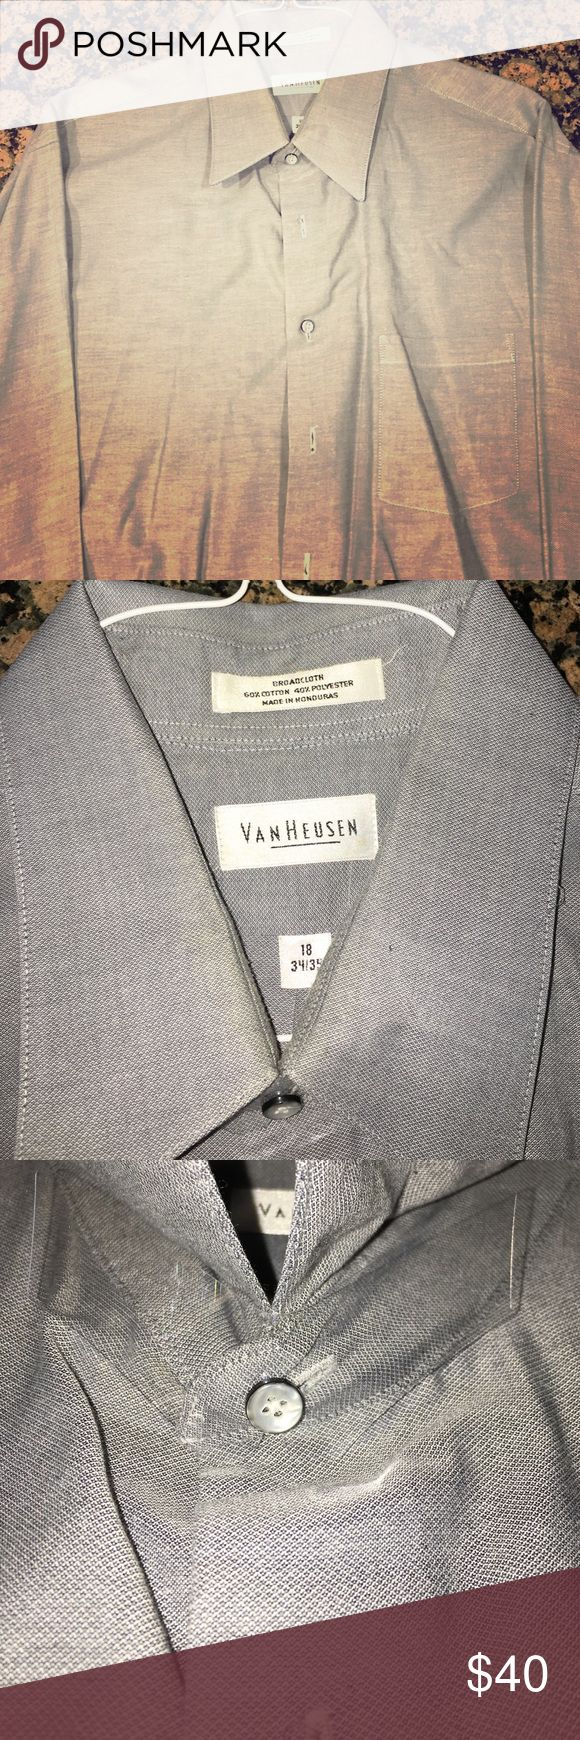 *NWOT* Men's Van Heusen Button Down - 18-34/35 Blue Men's Van Heusen Dress Button Down. This shit was purchased, dry cleaned and never worn. You can see dry cleaning tag on one button hole and shirt collar stays are still in place. 60% Cotton, 40% Polyester. 18 inch neck, size 34/35. Van Heusen Shirts Dress Shirts